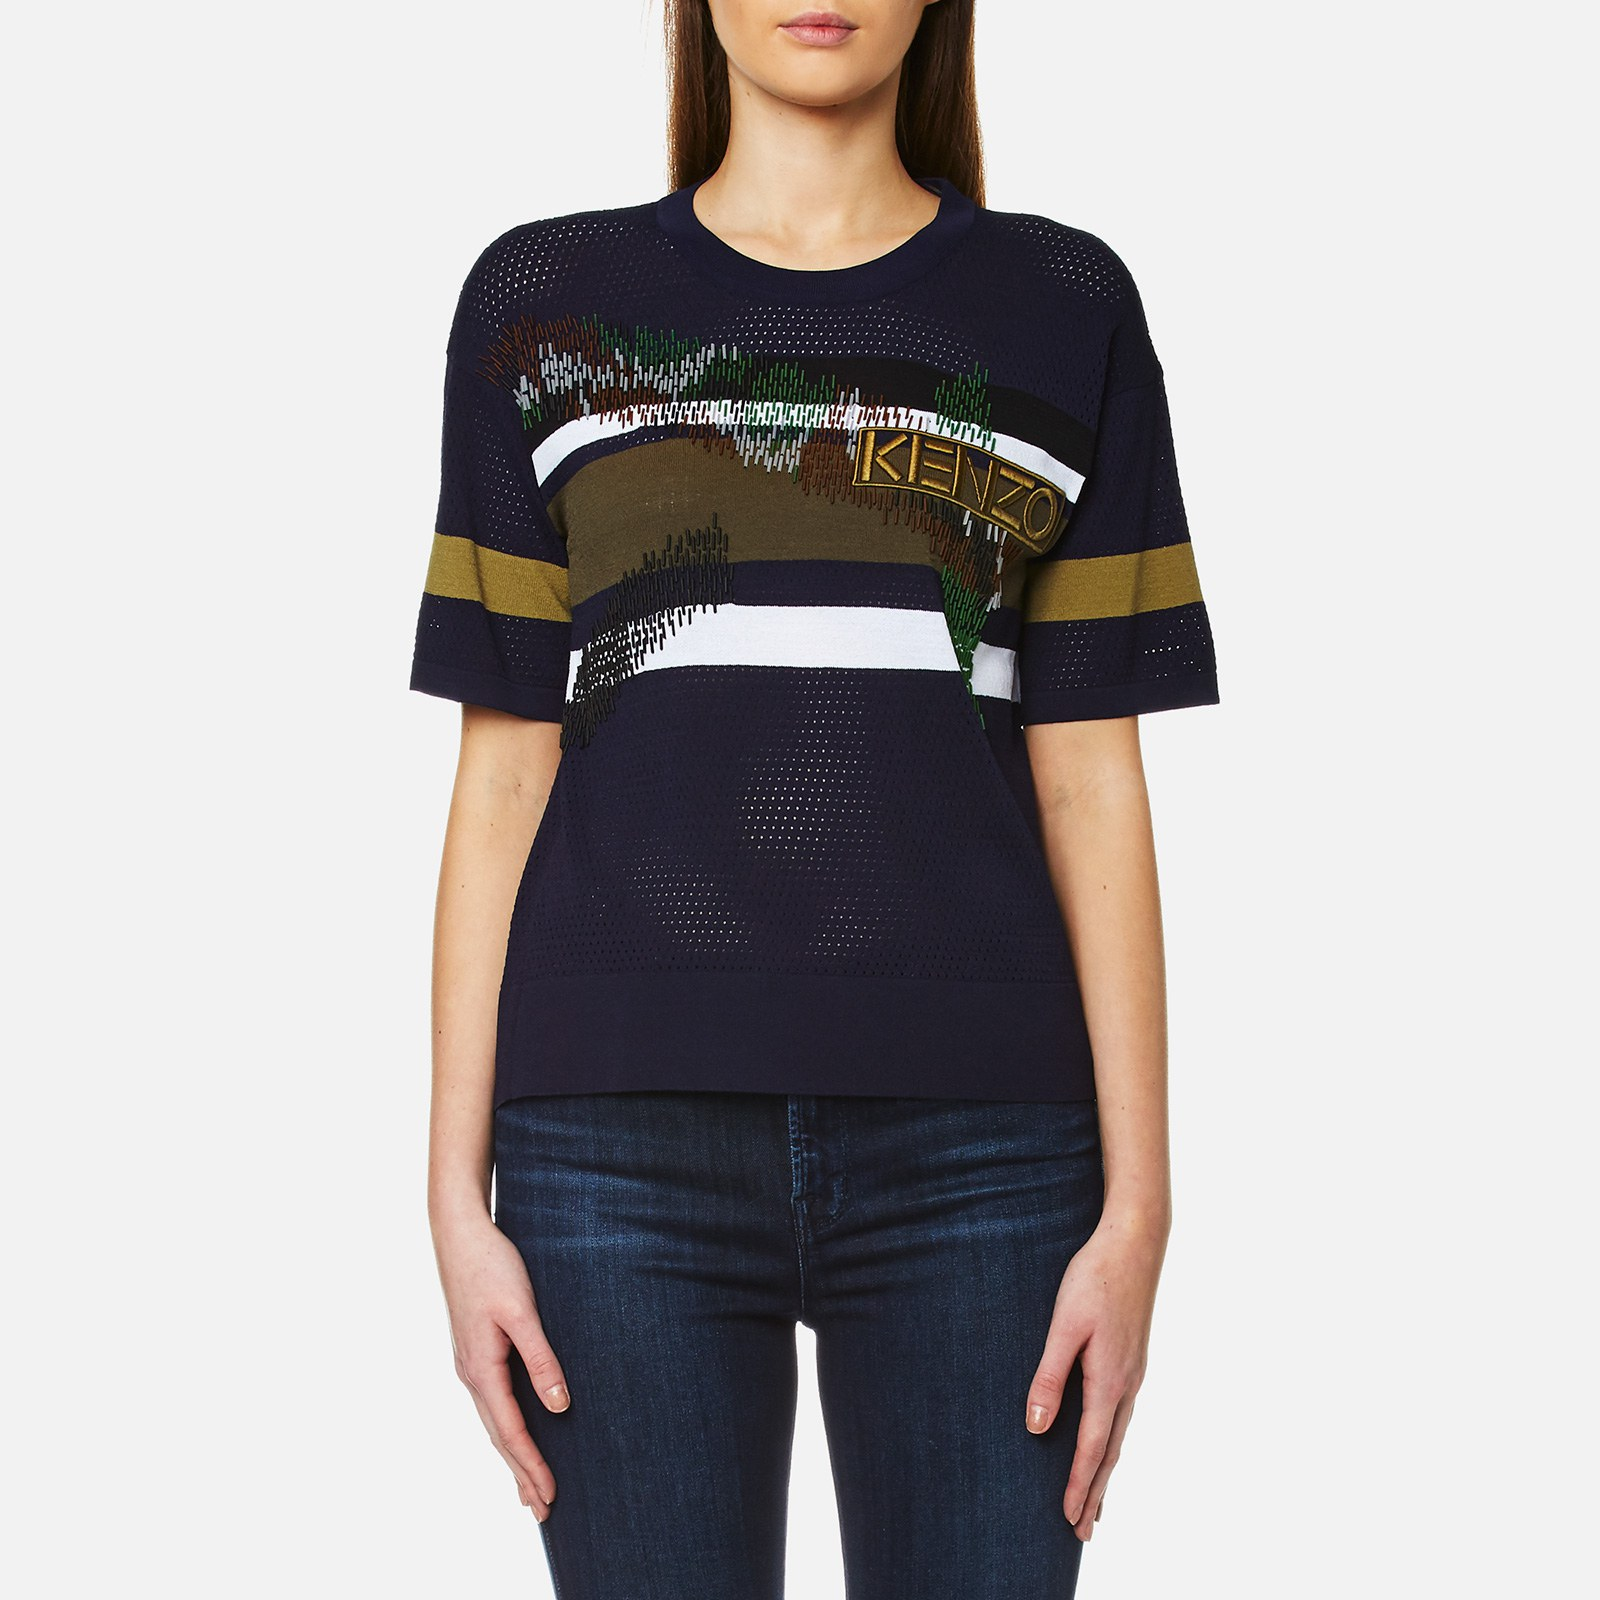 aa5917cd KENZO Women's Broken Camo Beaded Mesh Knit T-Shirt - Midnight Blue - Free  UK Delivery over £50